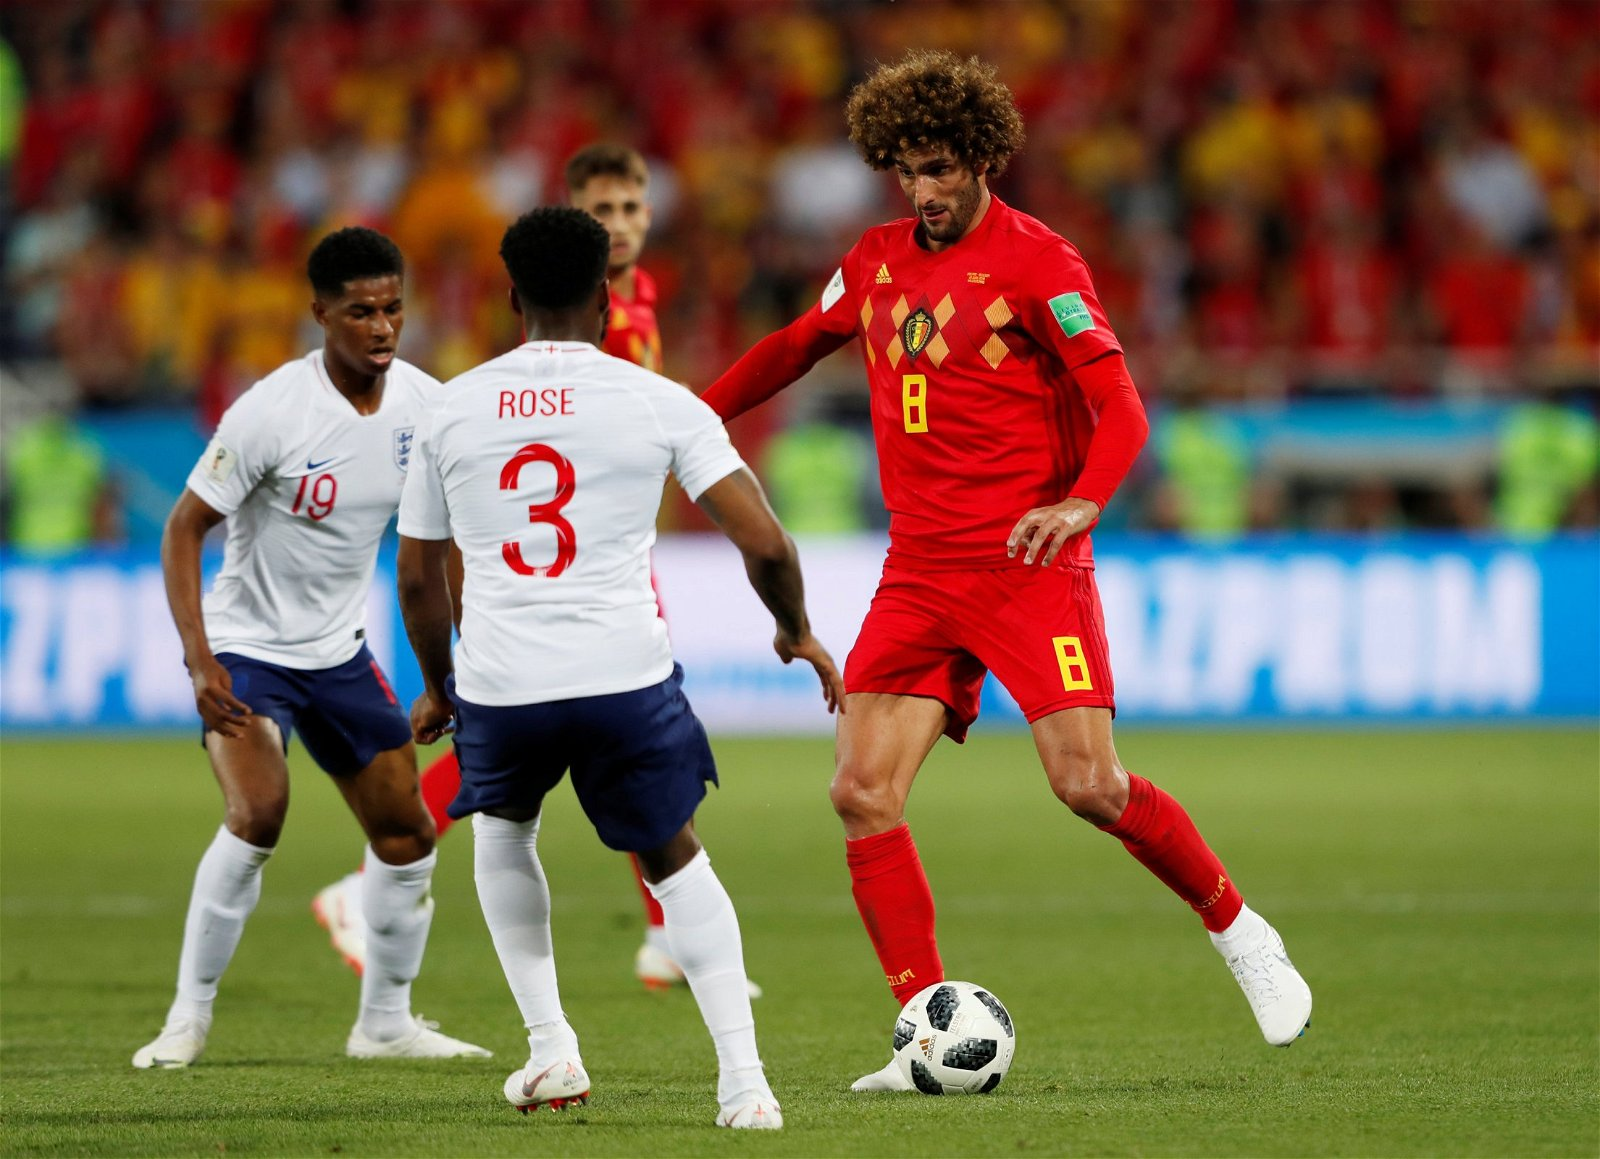 Marouane Fellaini in action for Belgium against England at the World Cup